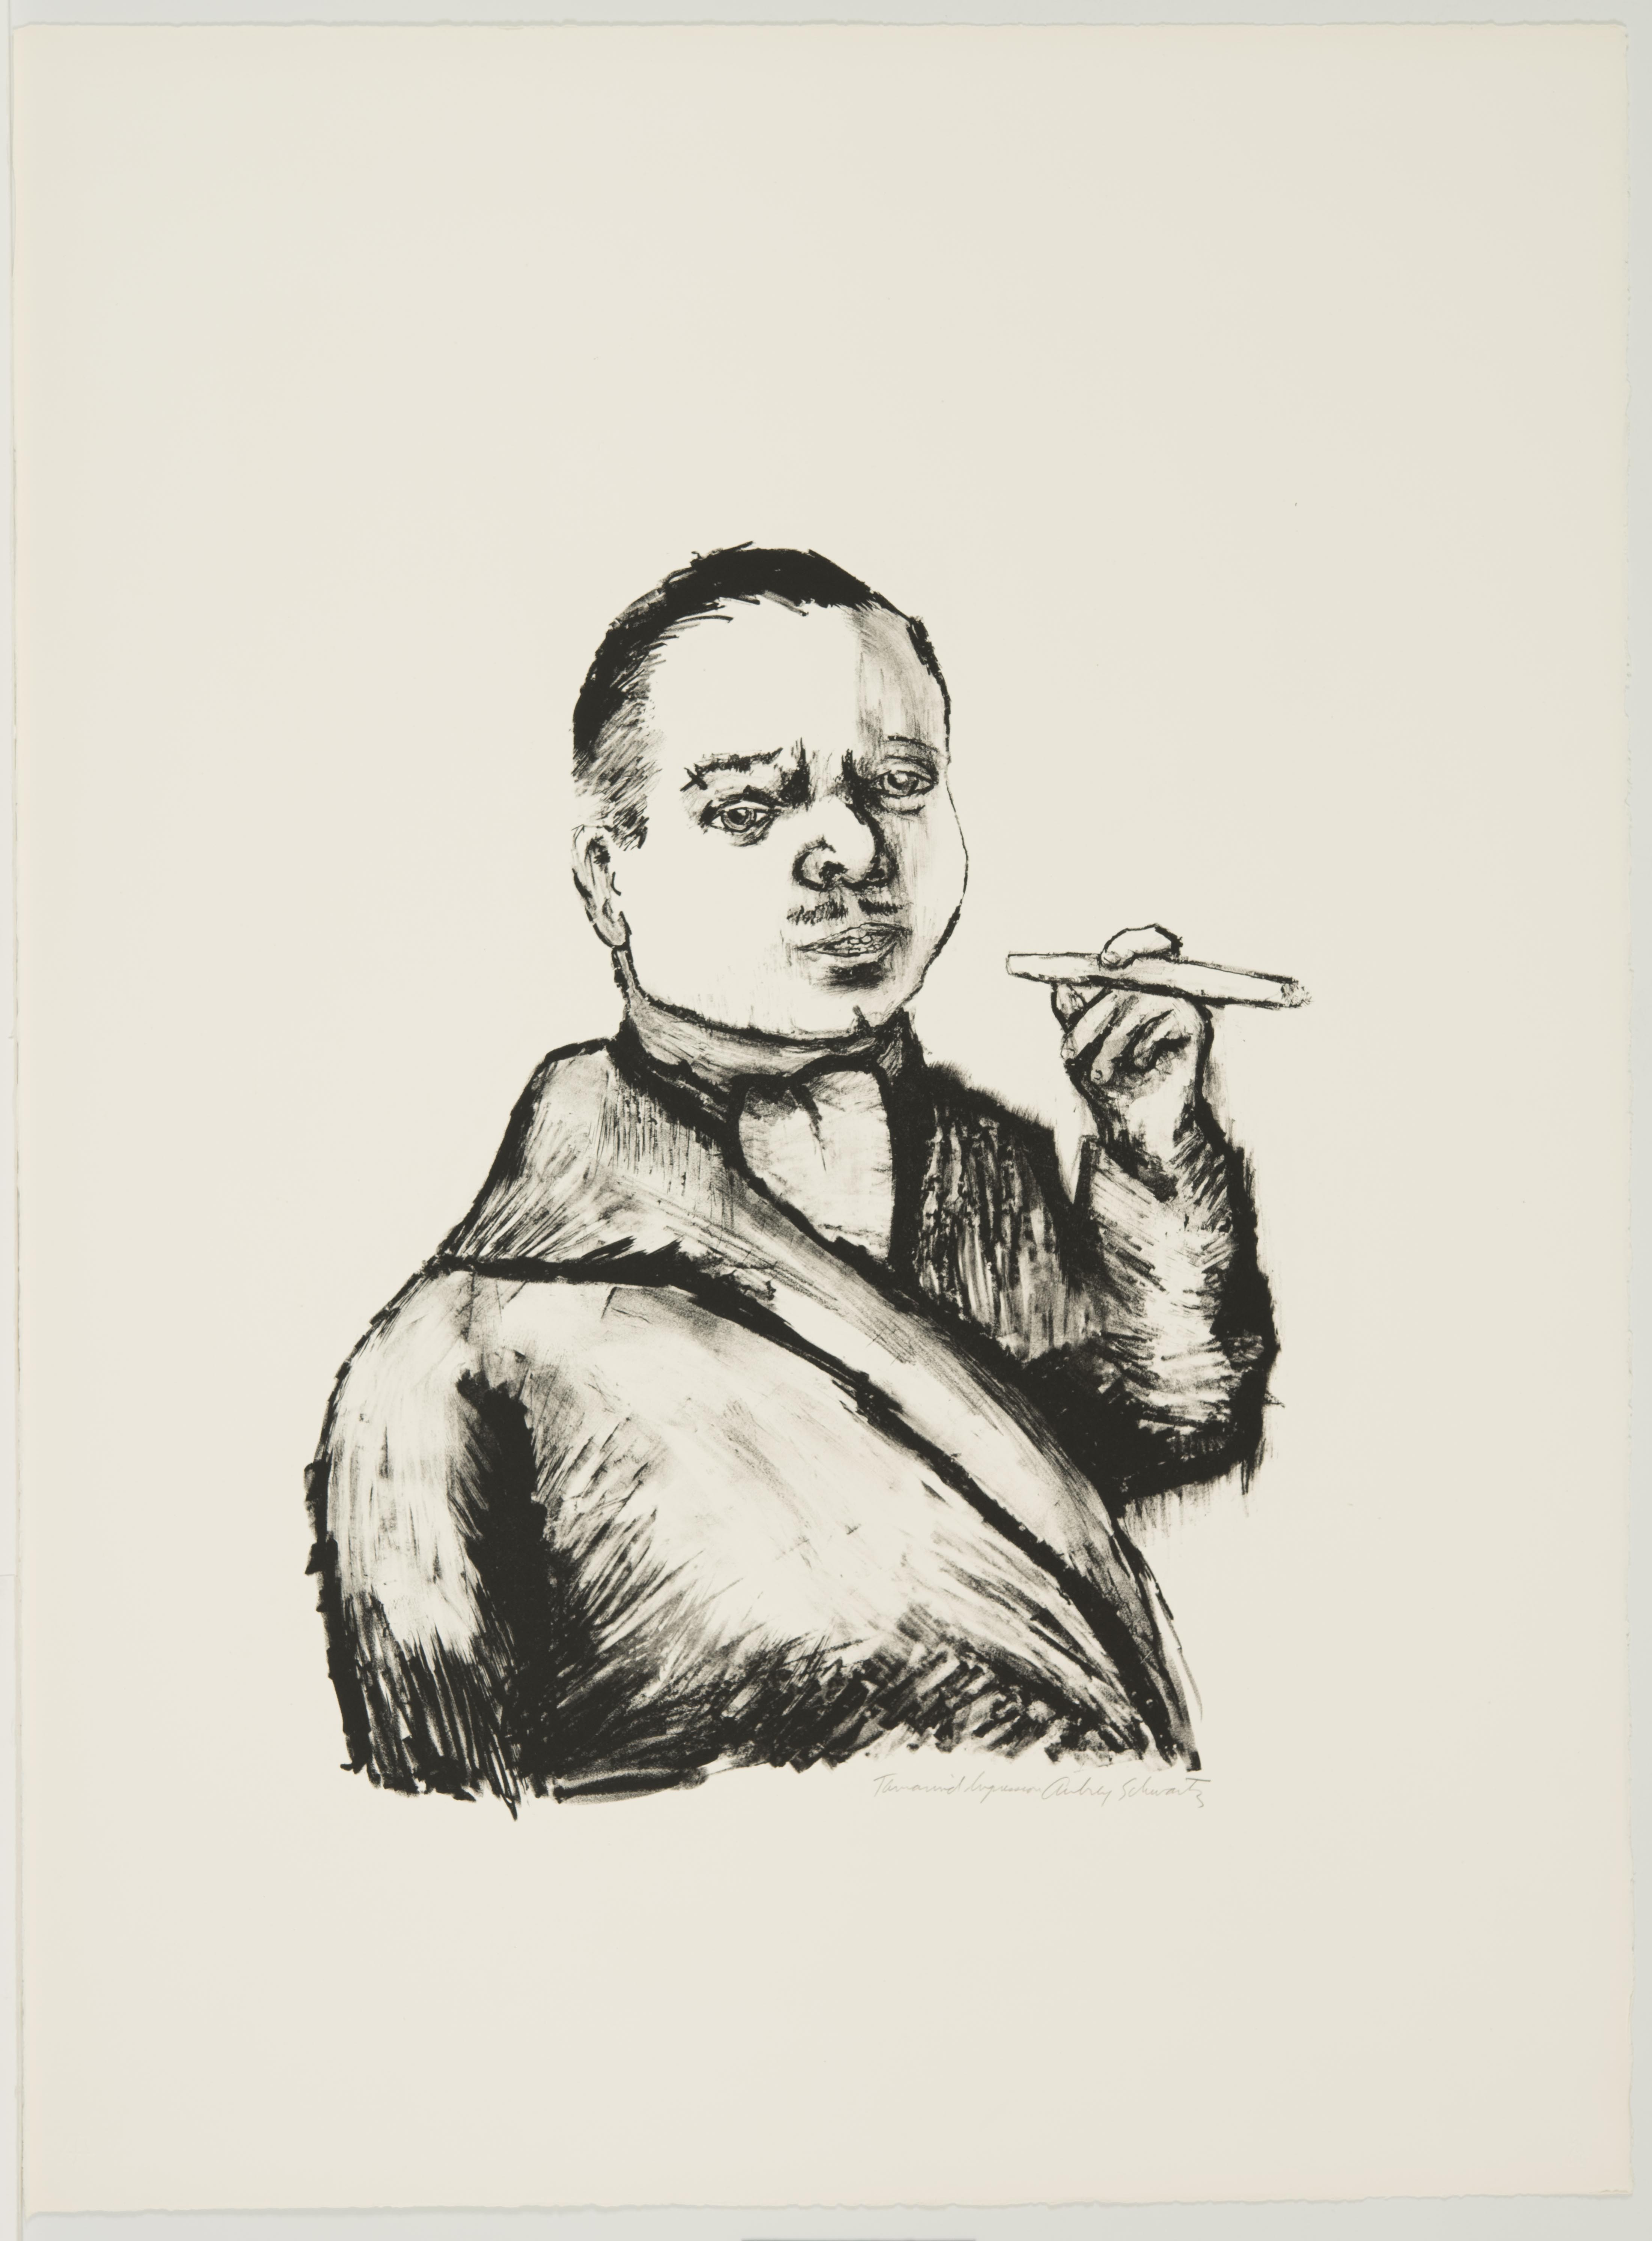 Aubrey Schwartz, Man with Cigar (IX), September - November 1960